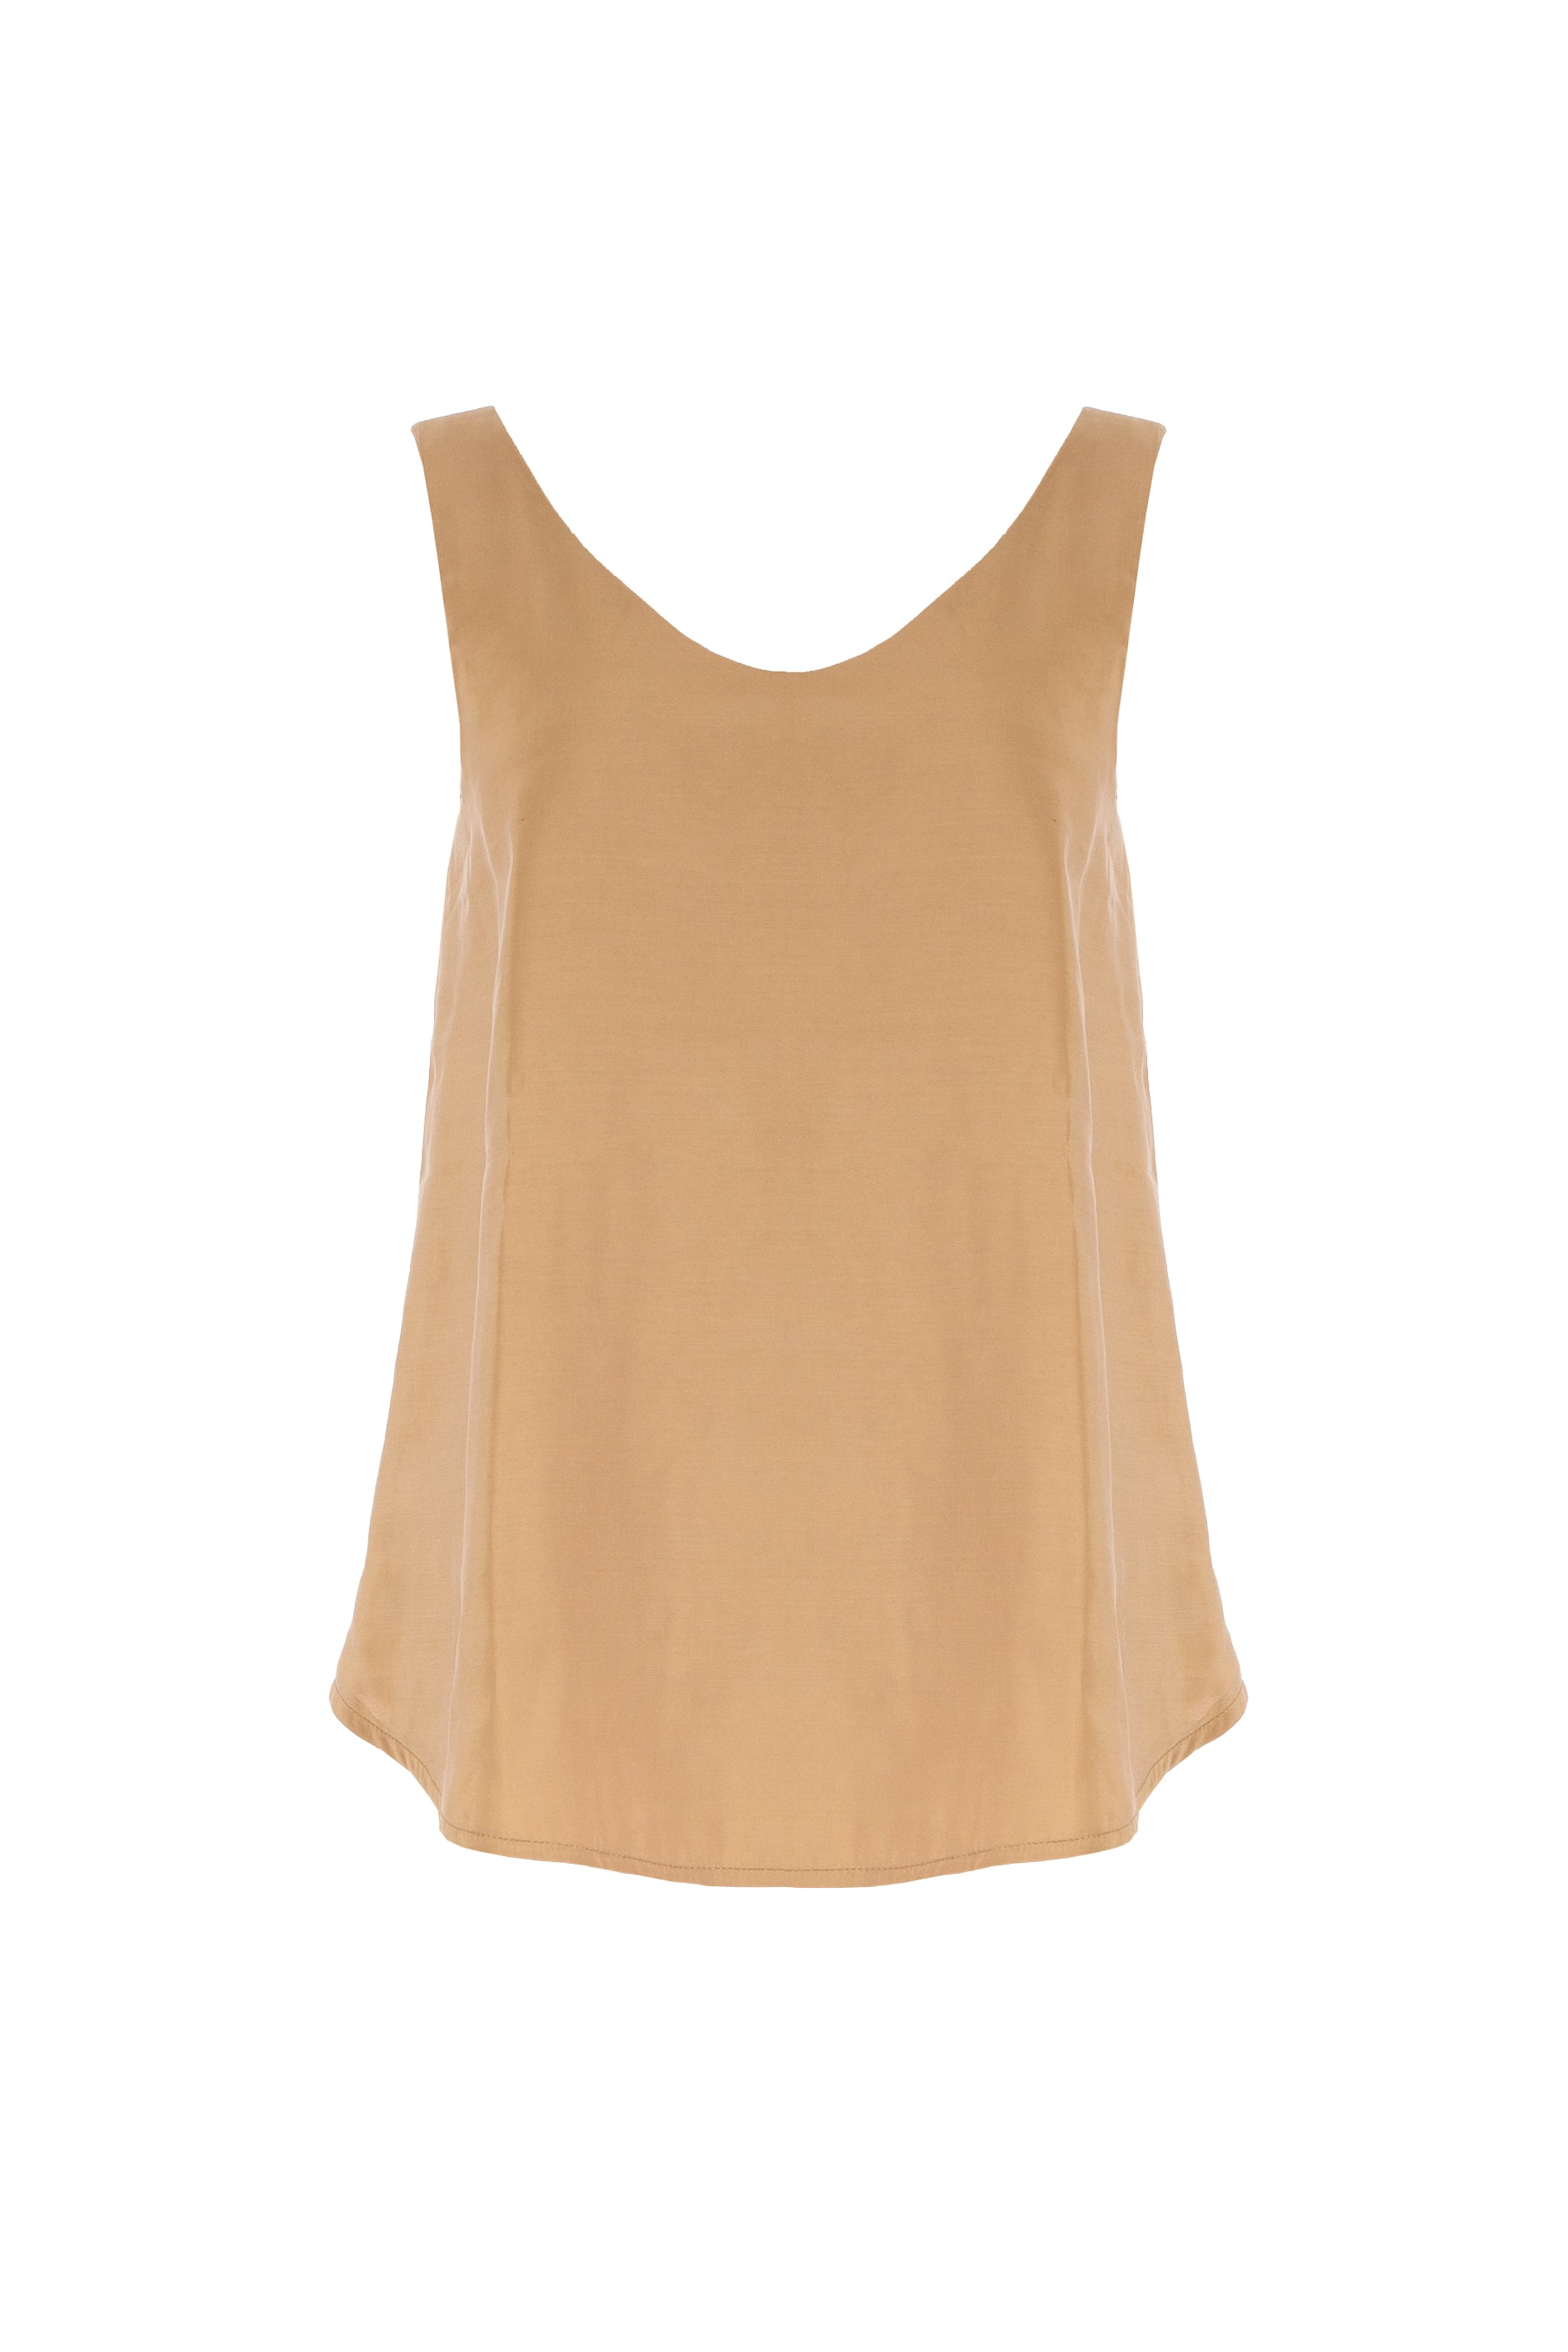 9757 - GAO - CREMA TOP IN CUPRO -BYOU by Patricia Gouveia